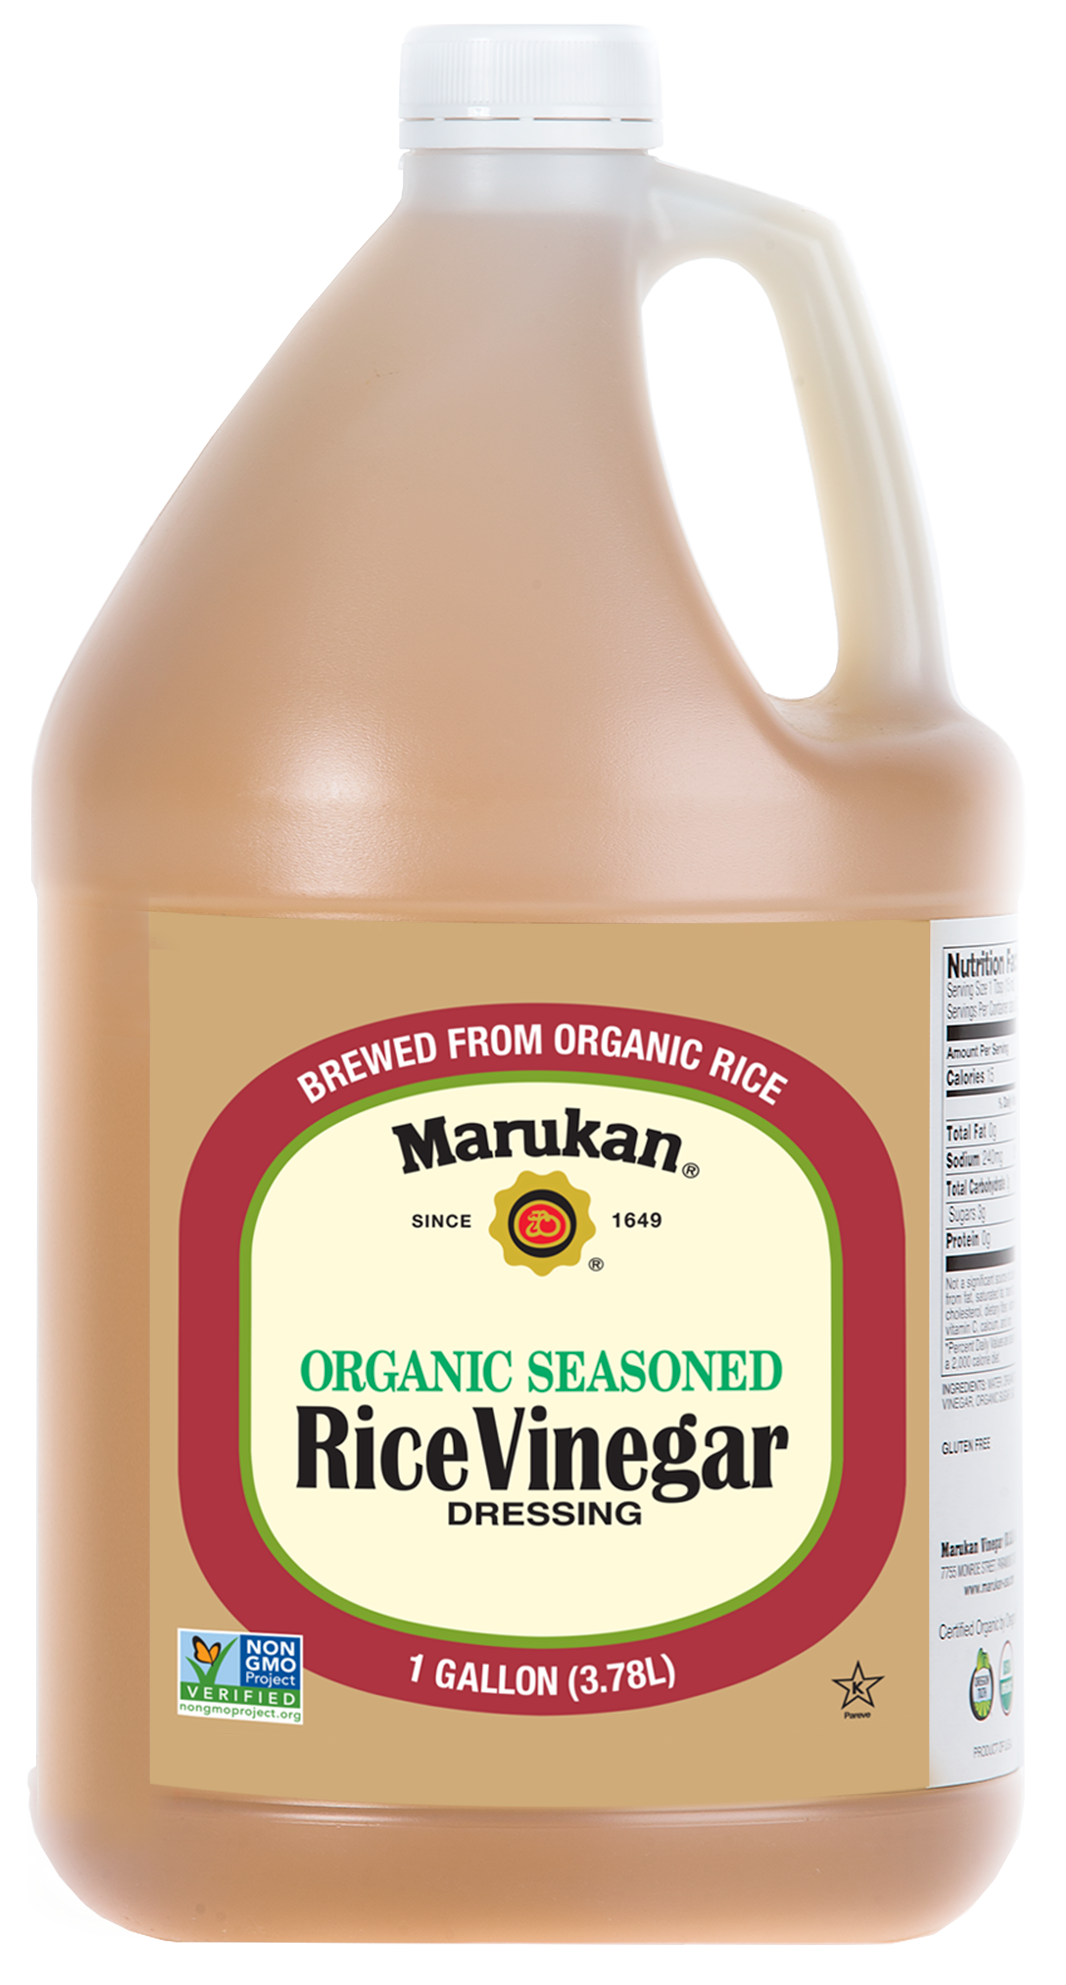 Bottle of Organic Seasoned Rice Vinegar Dressing